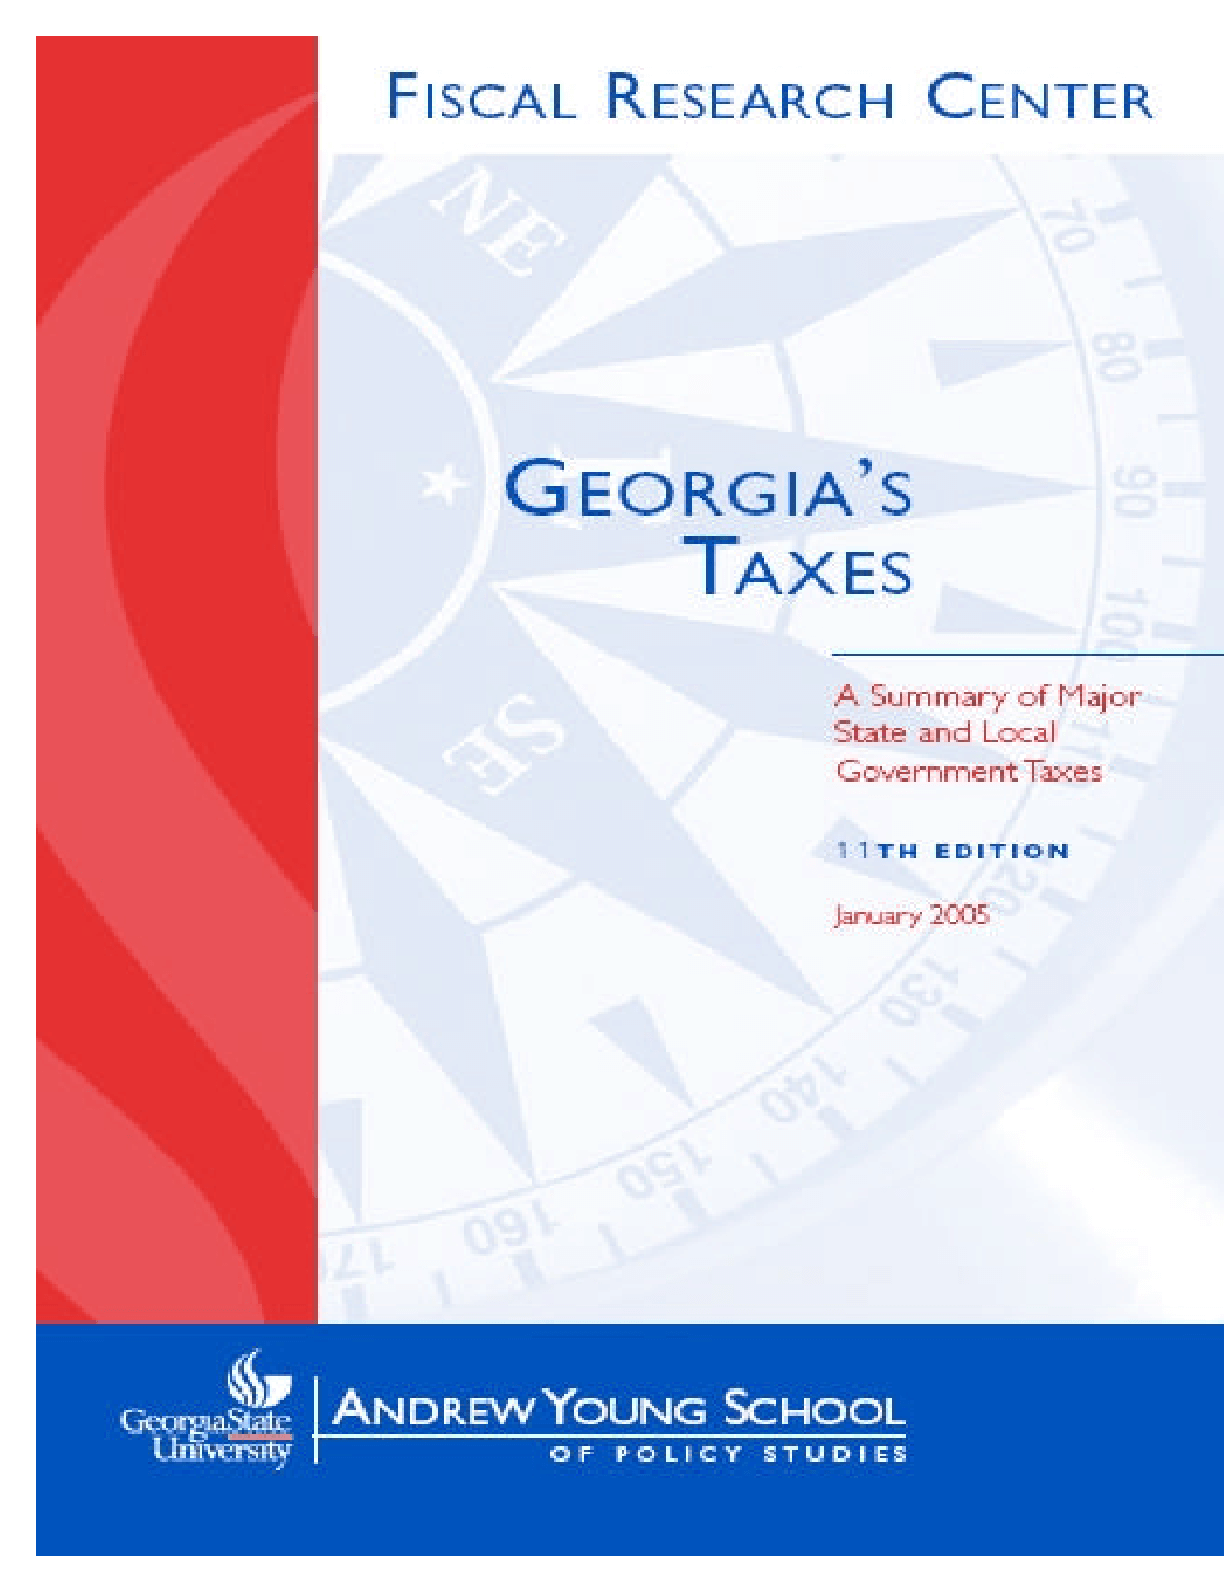 Georgia's Taxes: A Summary of Major State and Local Government Taxes (Eleventh Edition)